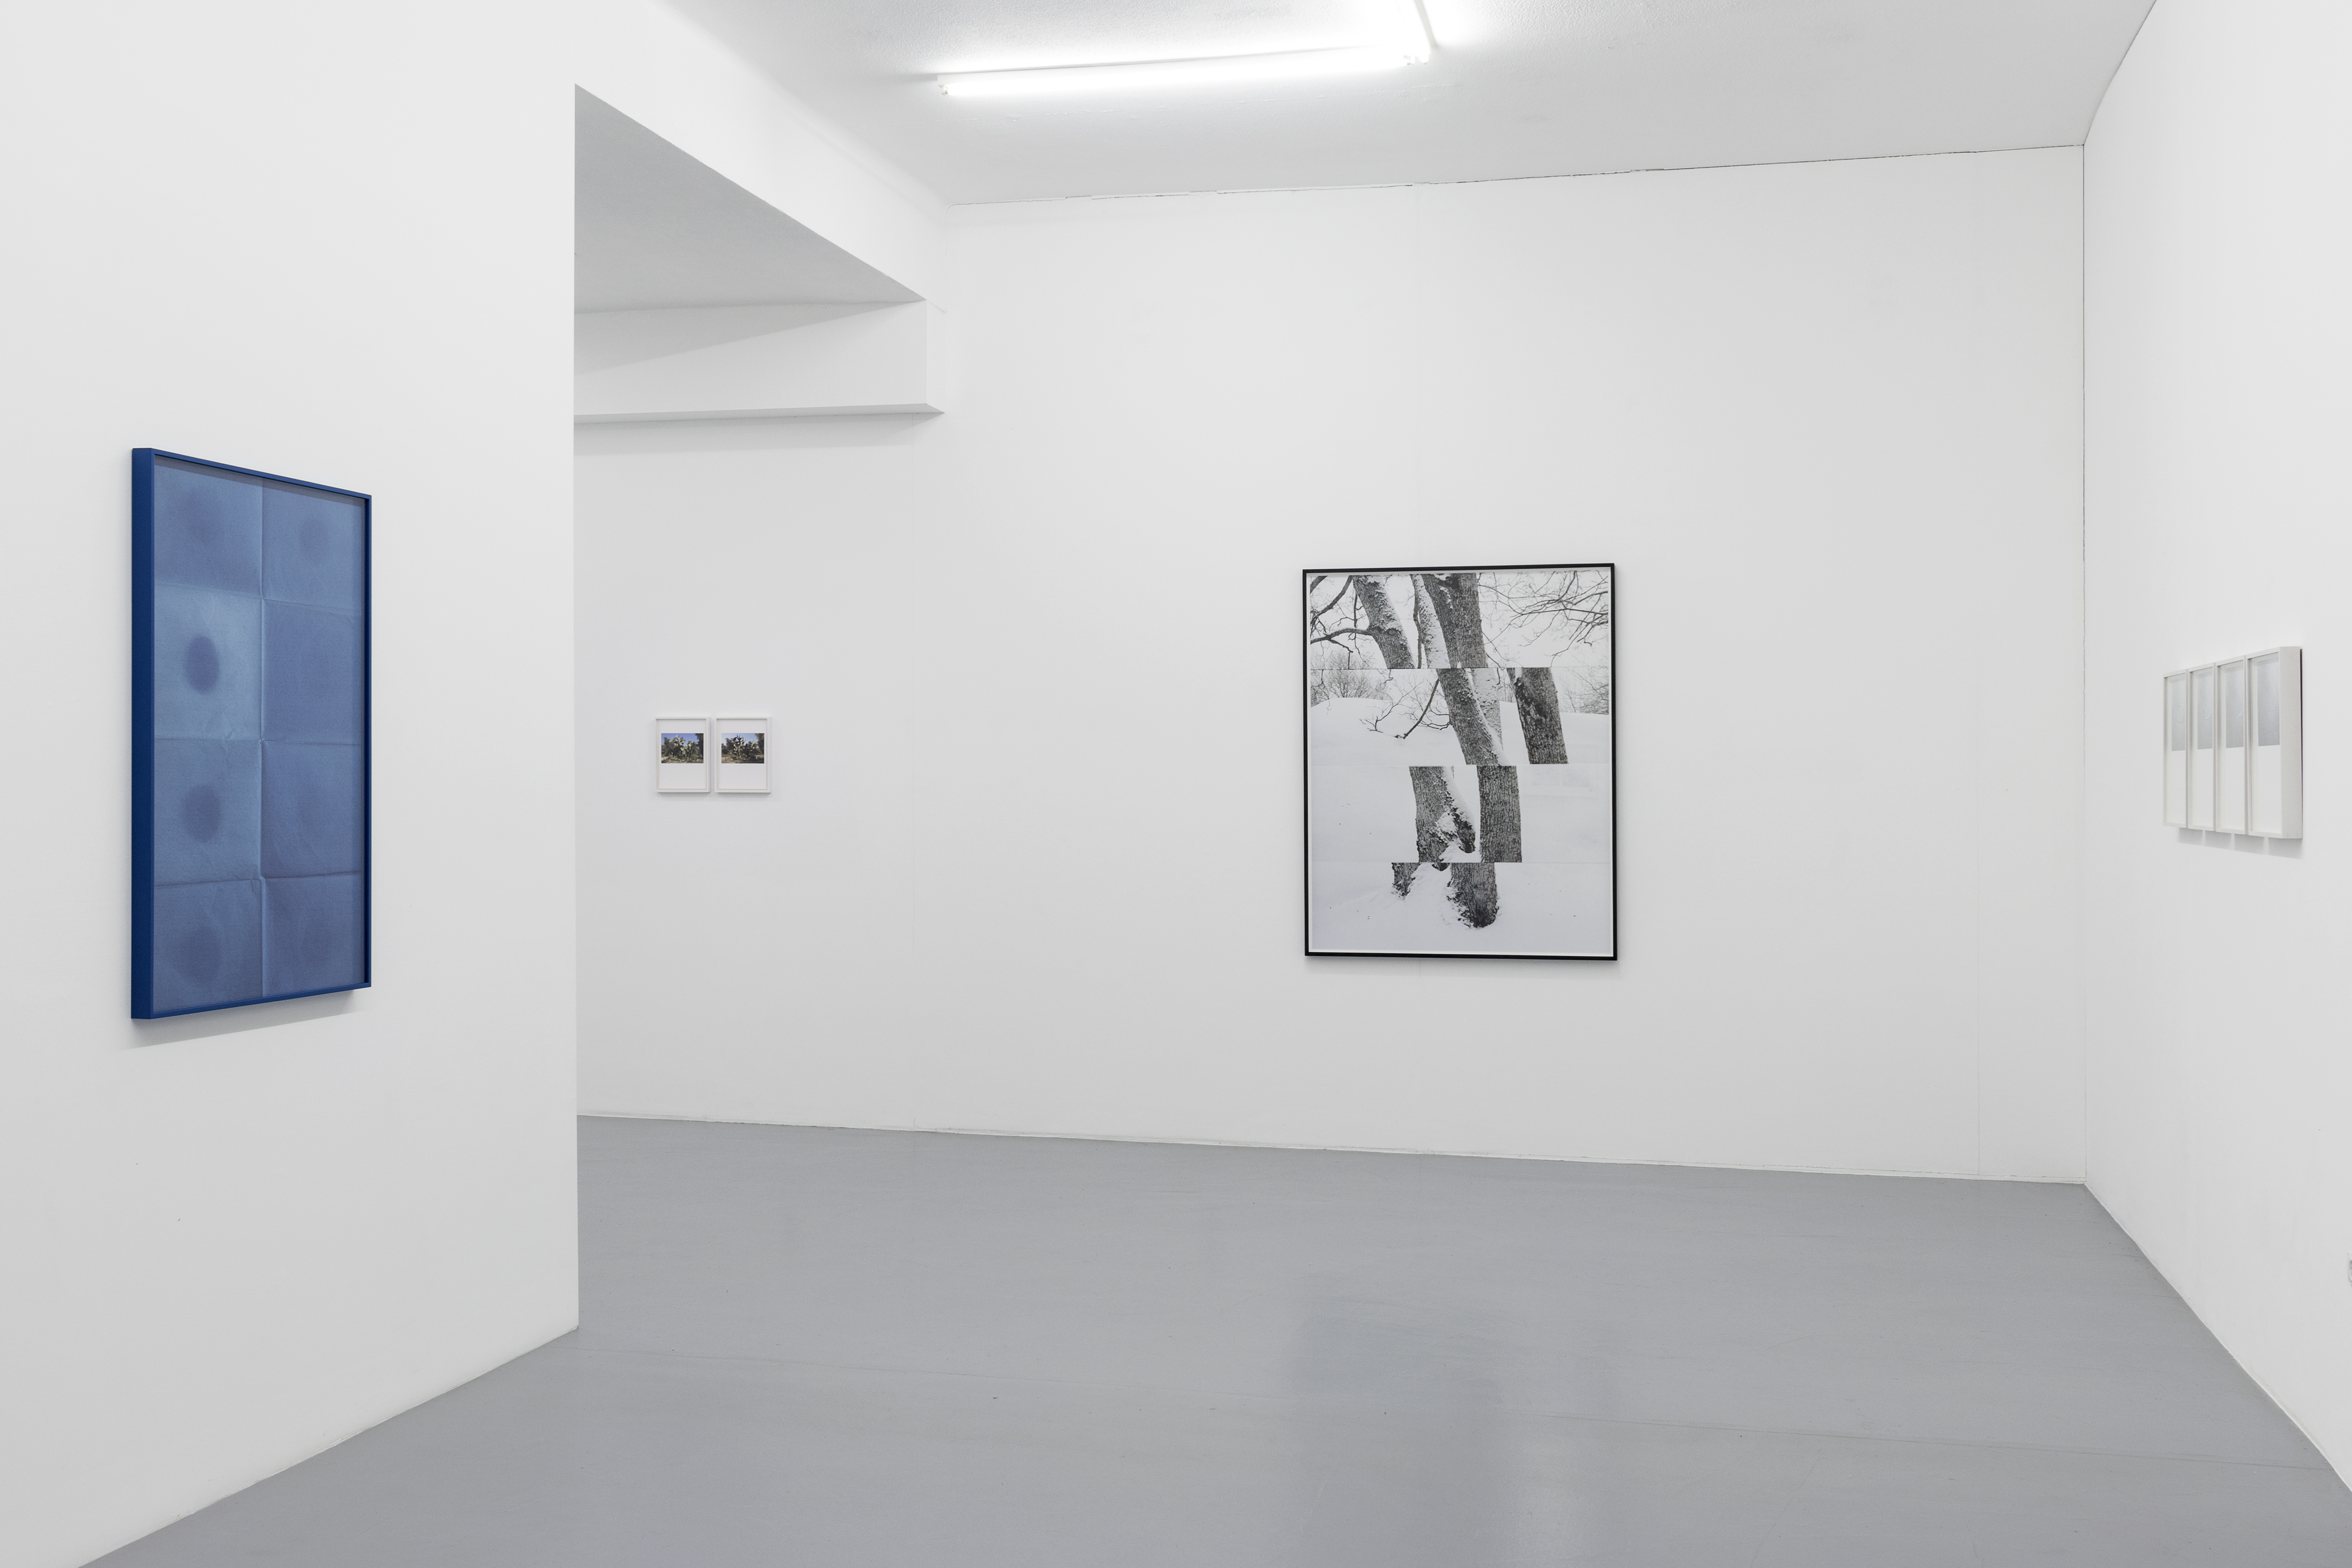 Installation View at 3+1 Gallery Lisbon, Portugal 2019